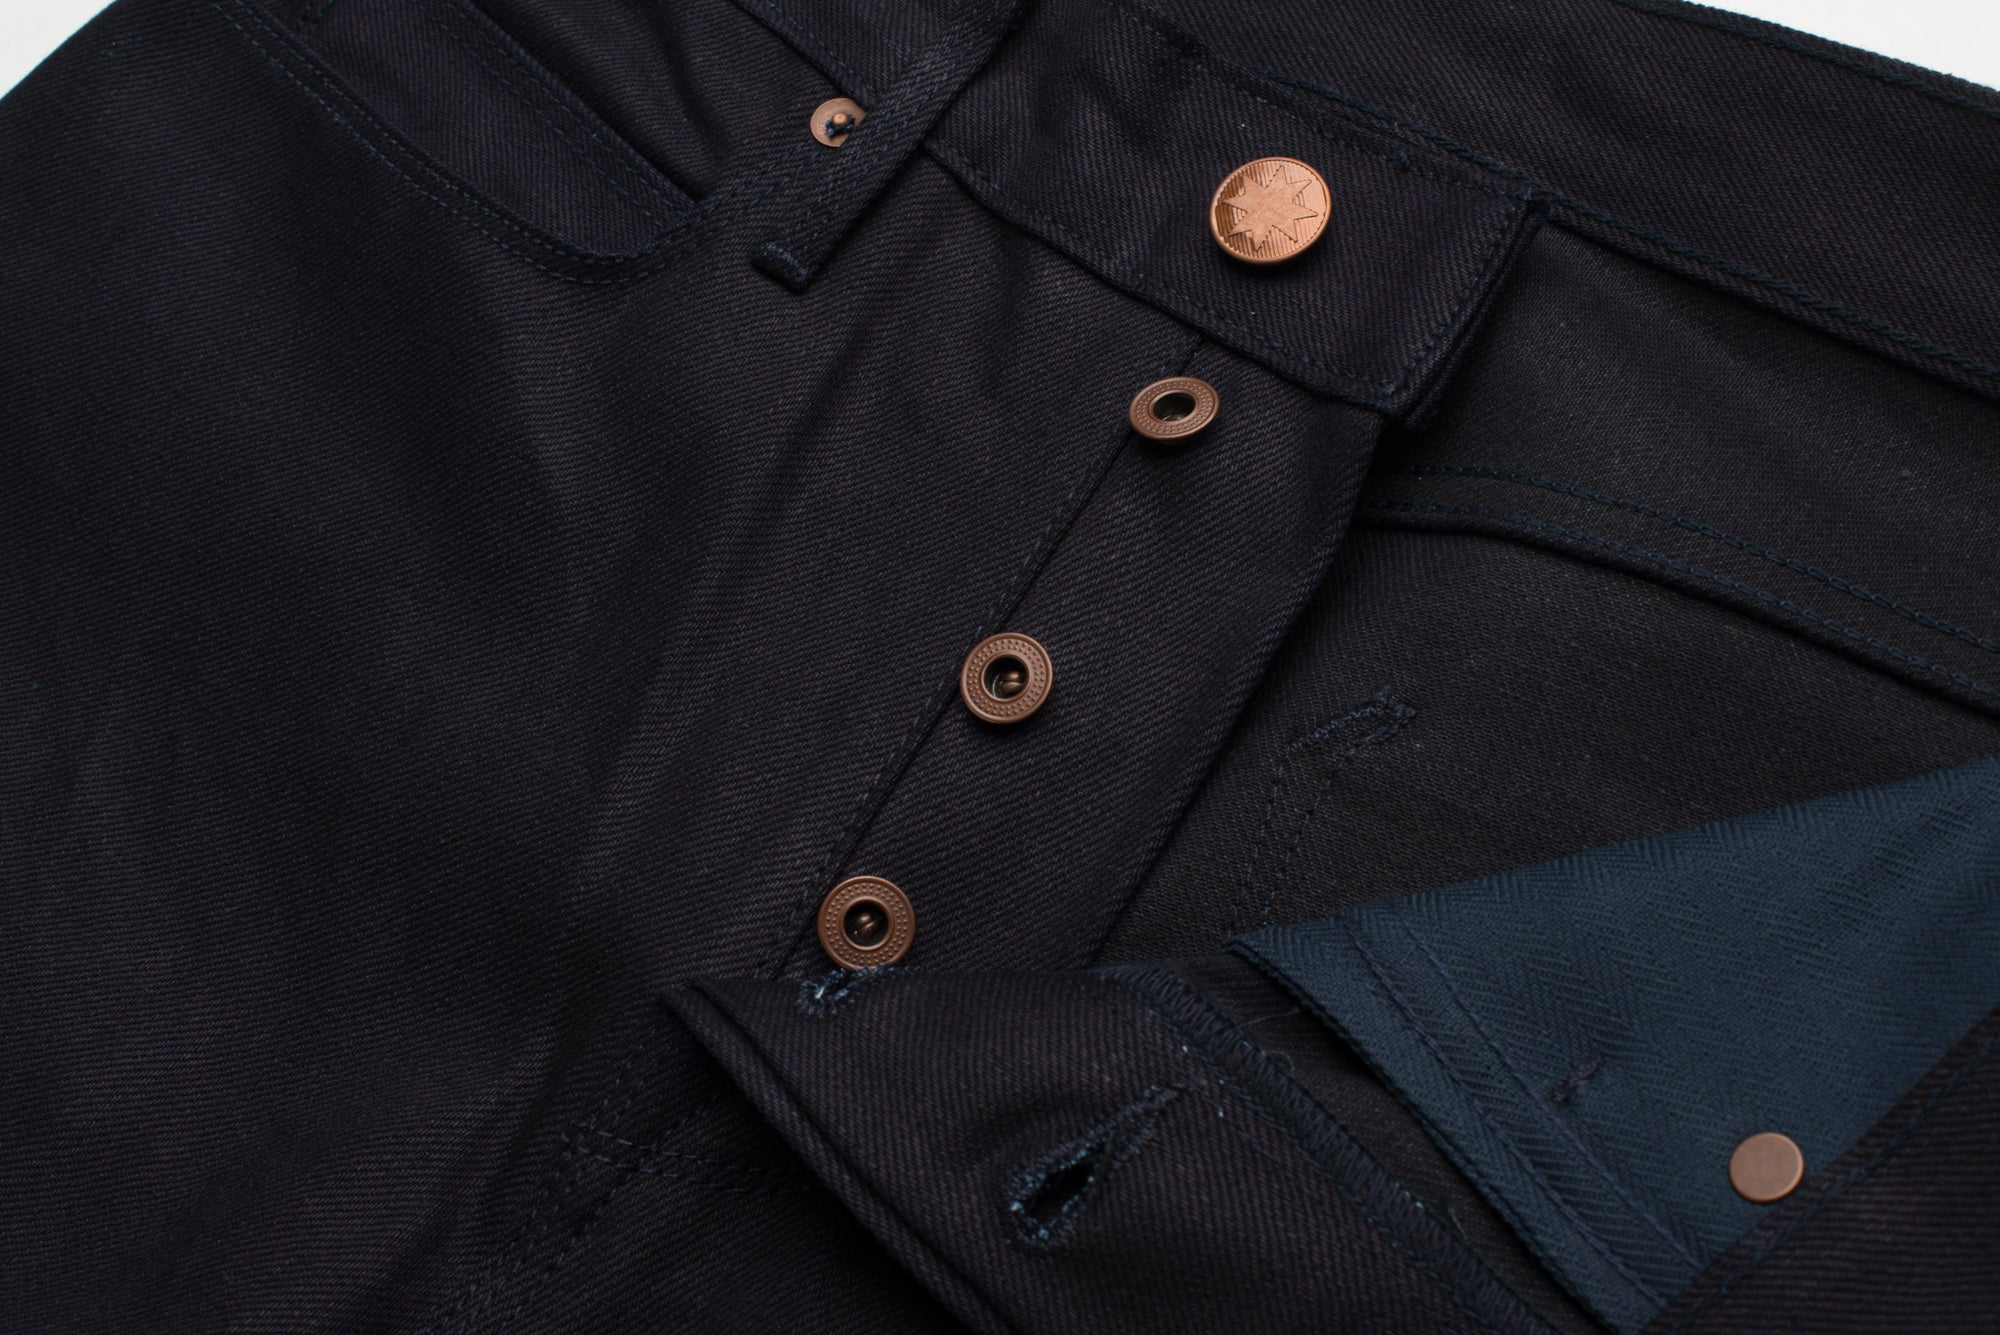 Portola 14.75 oz Blue Black Japanese Denim Fly Construction